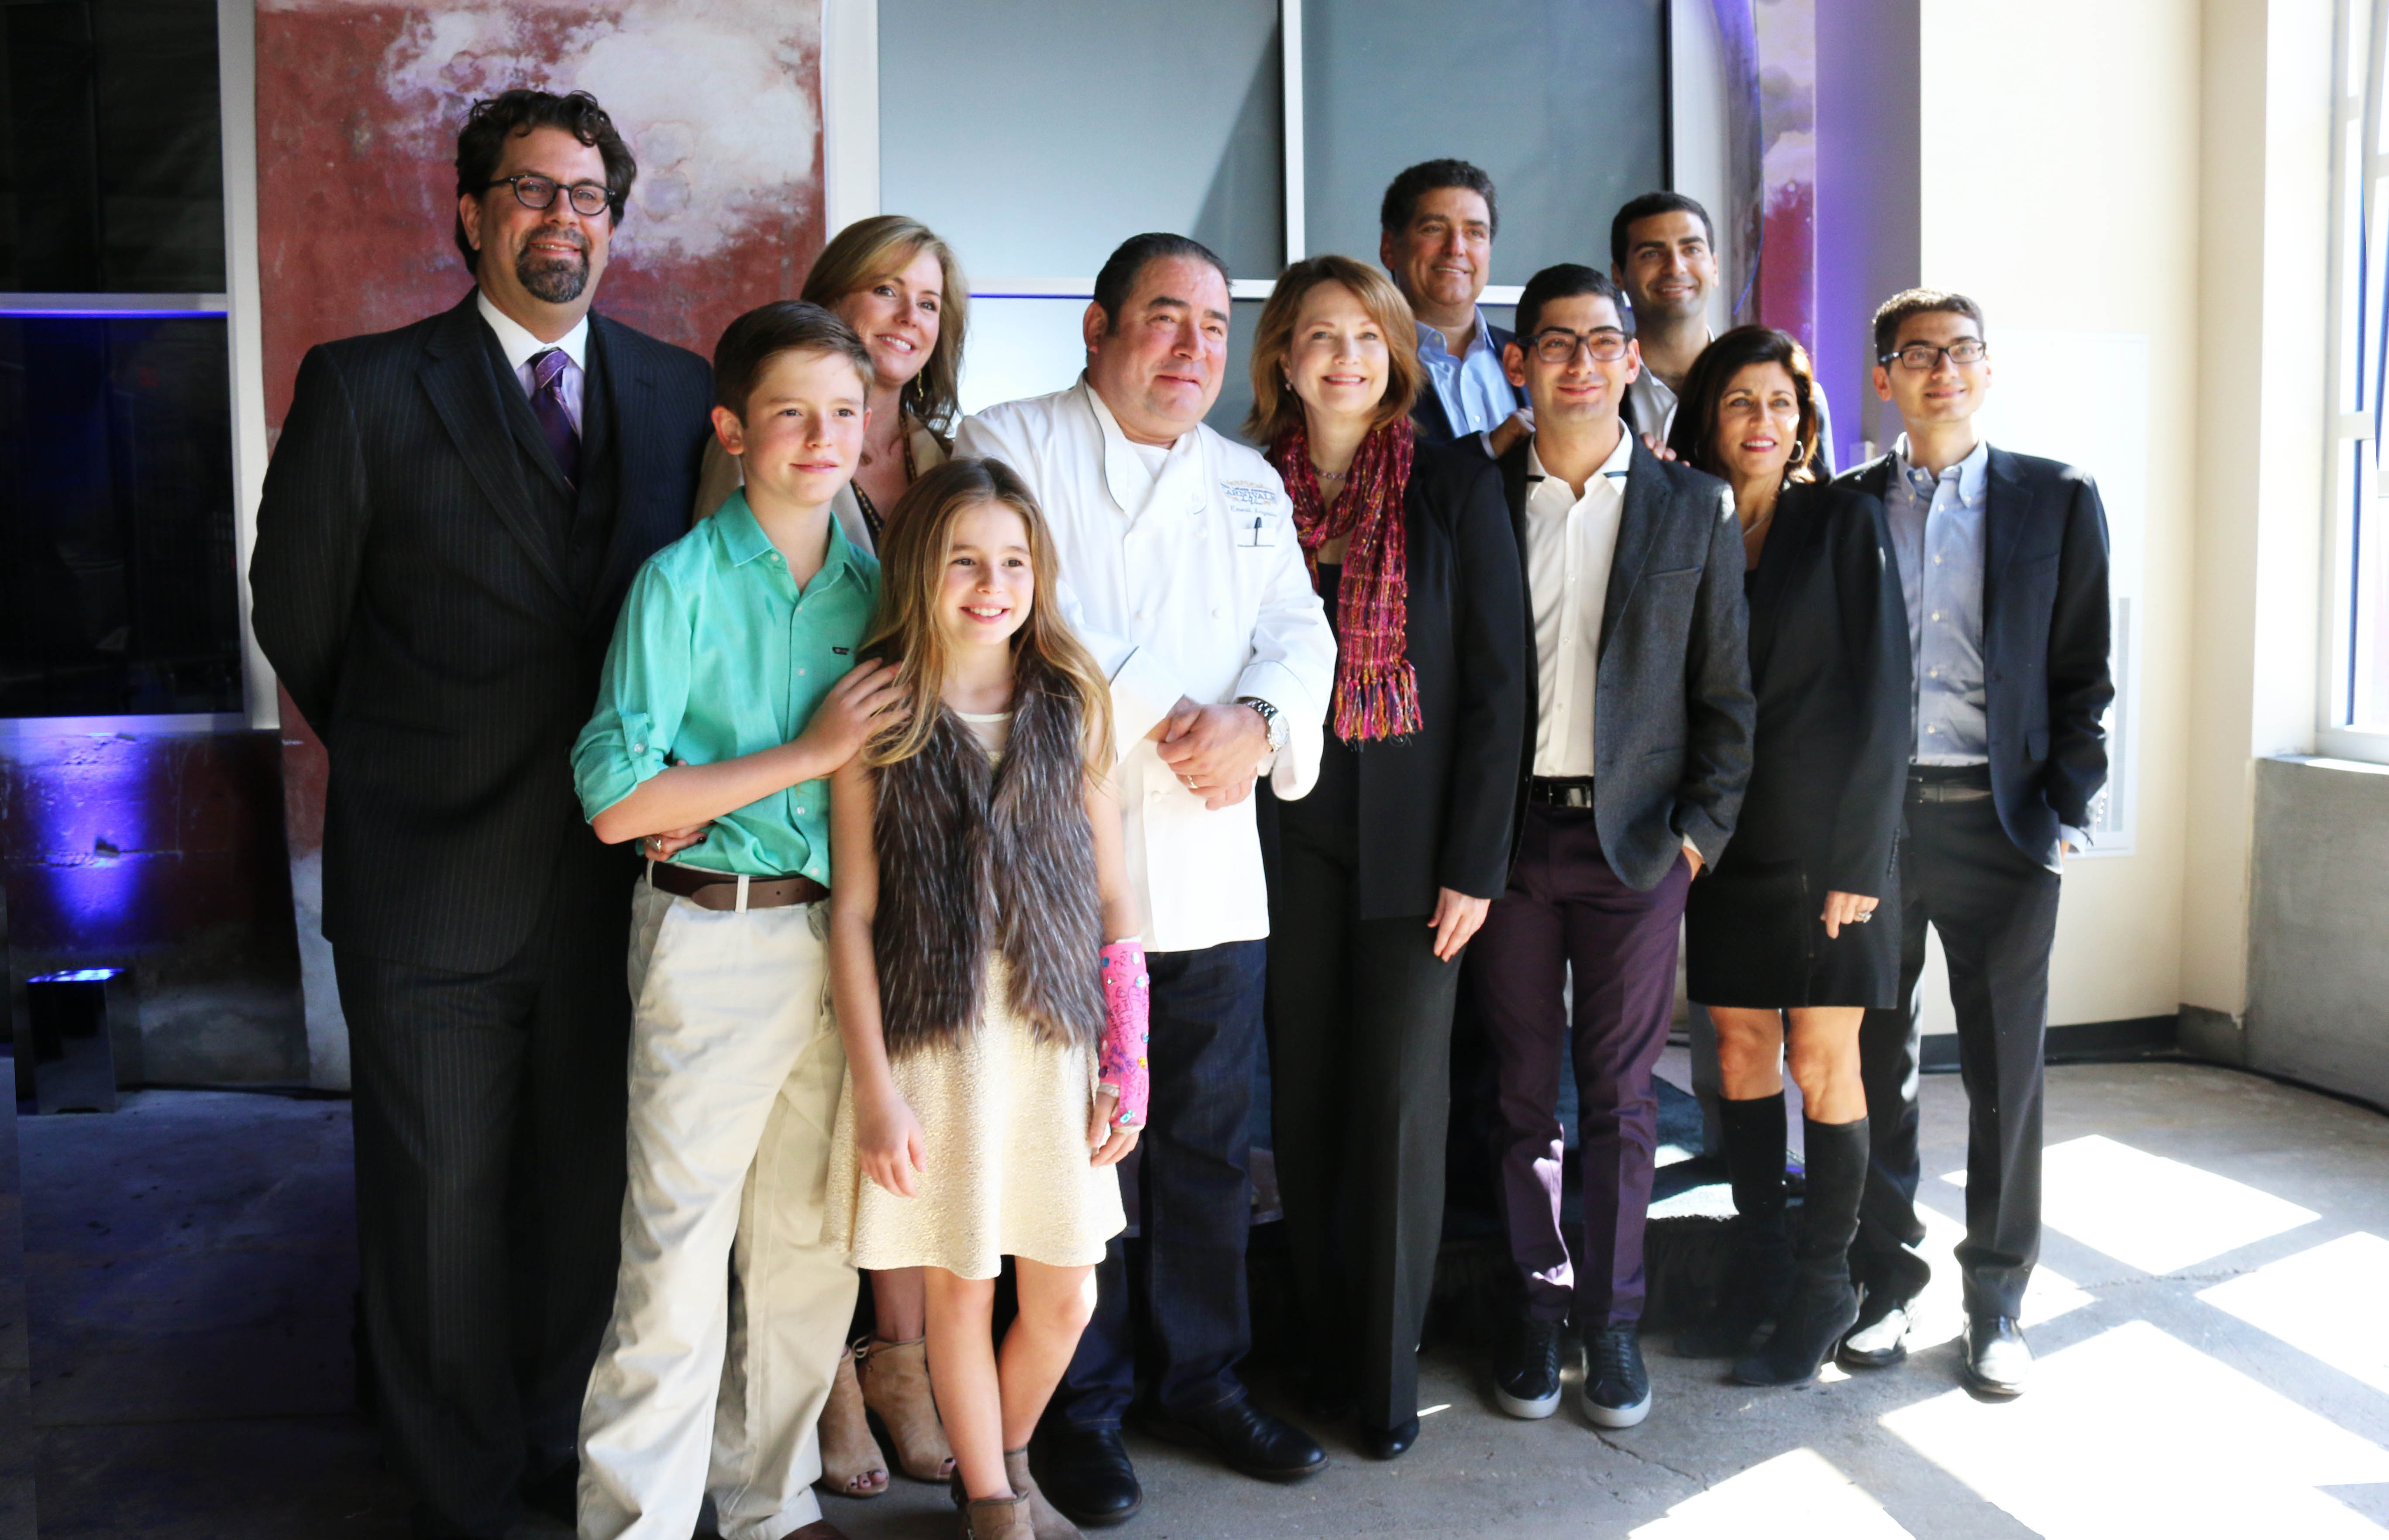 Emeril Lagasse Foundation & The Solomon Family Partner To Announce A Major Grant In Support Of NOCCA